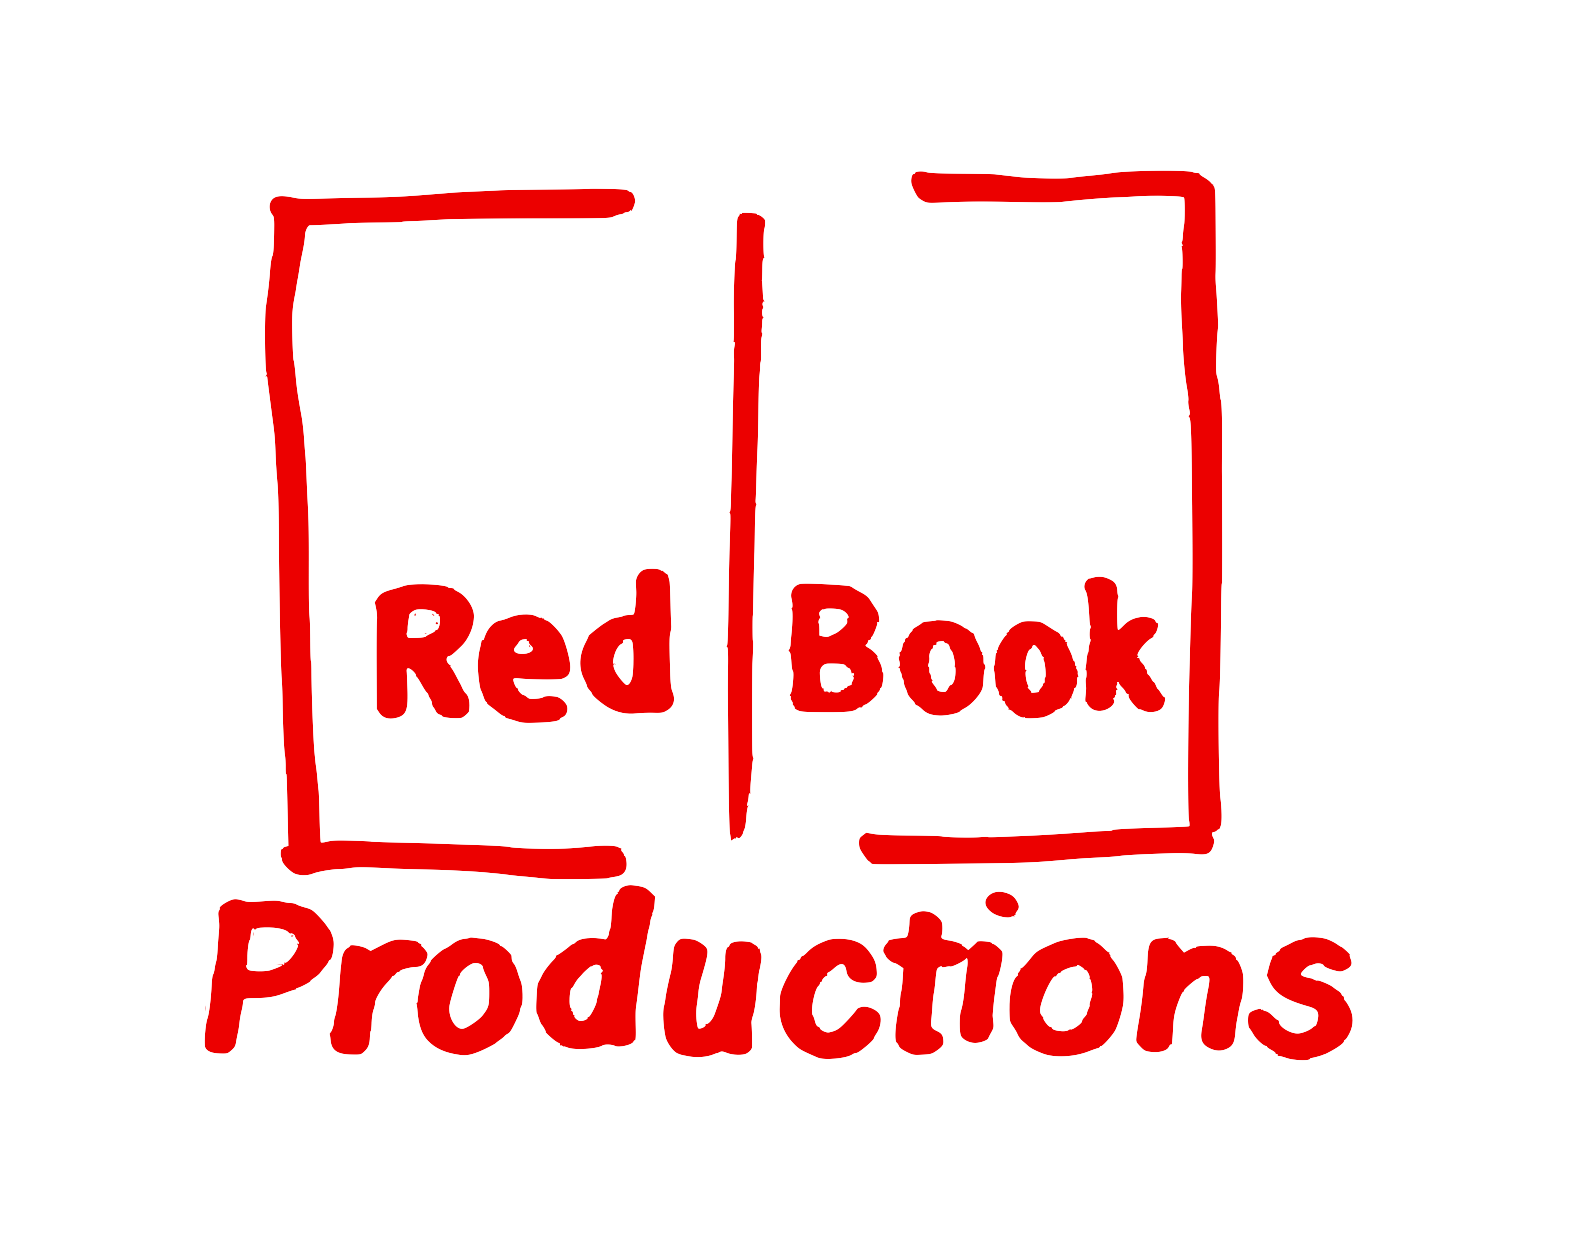 Red Book Productions